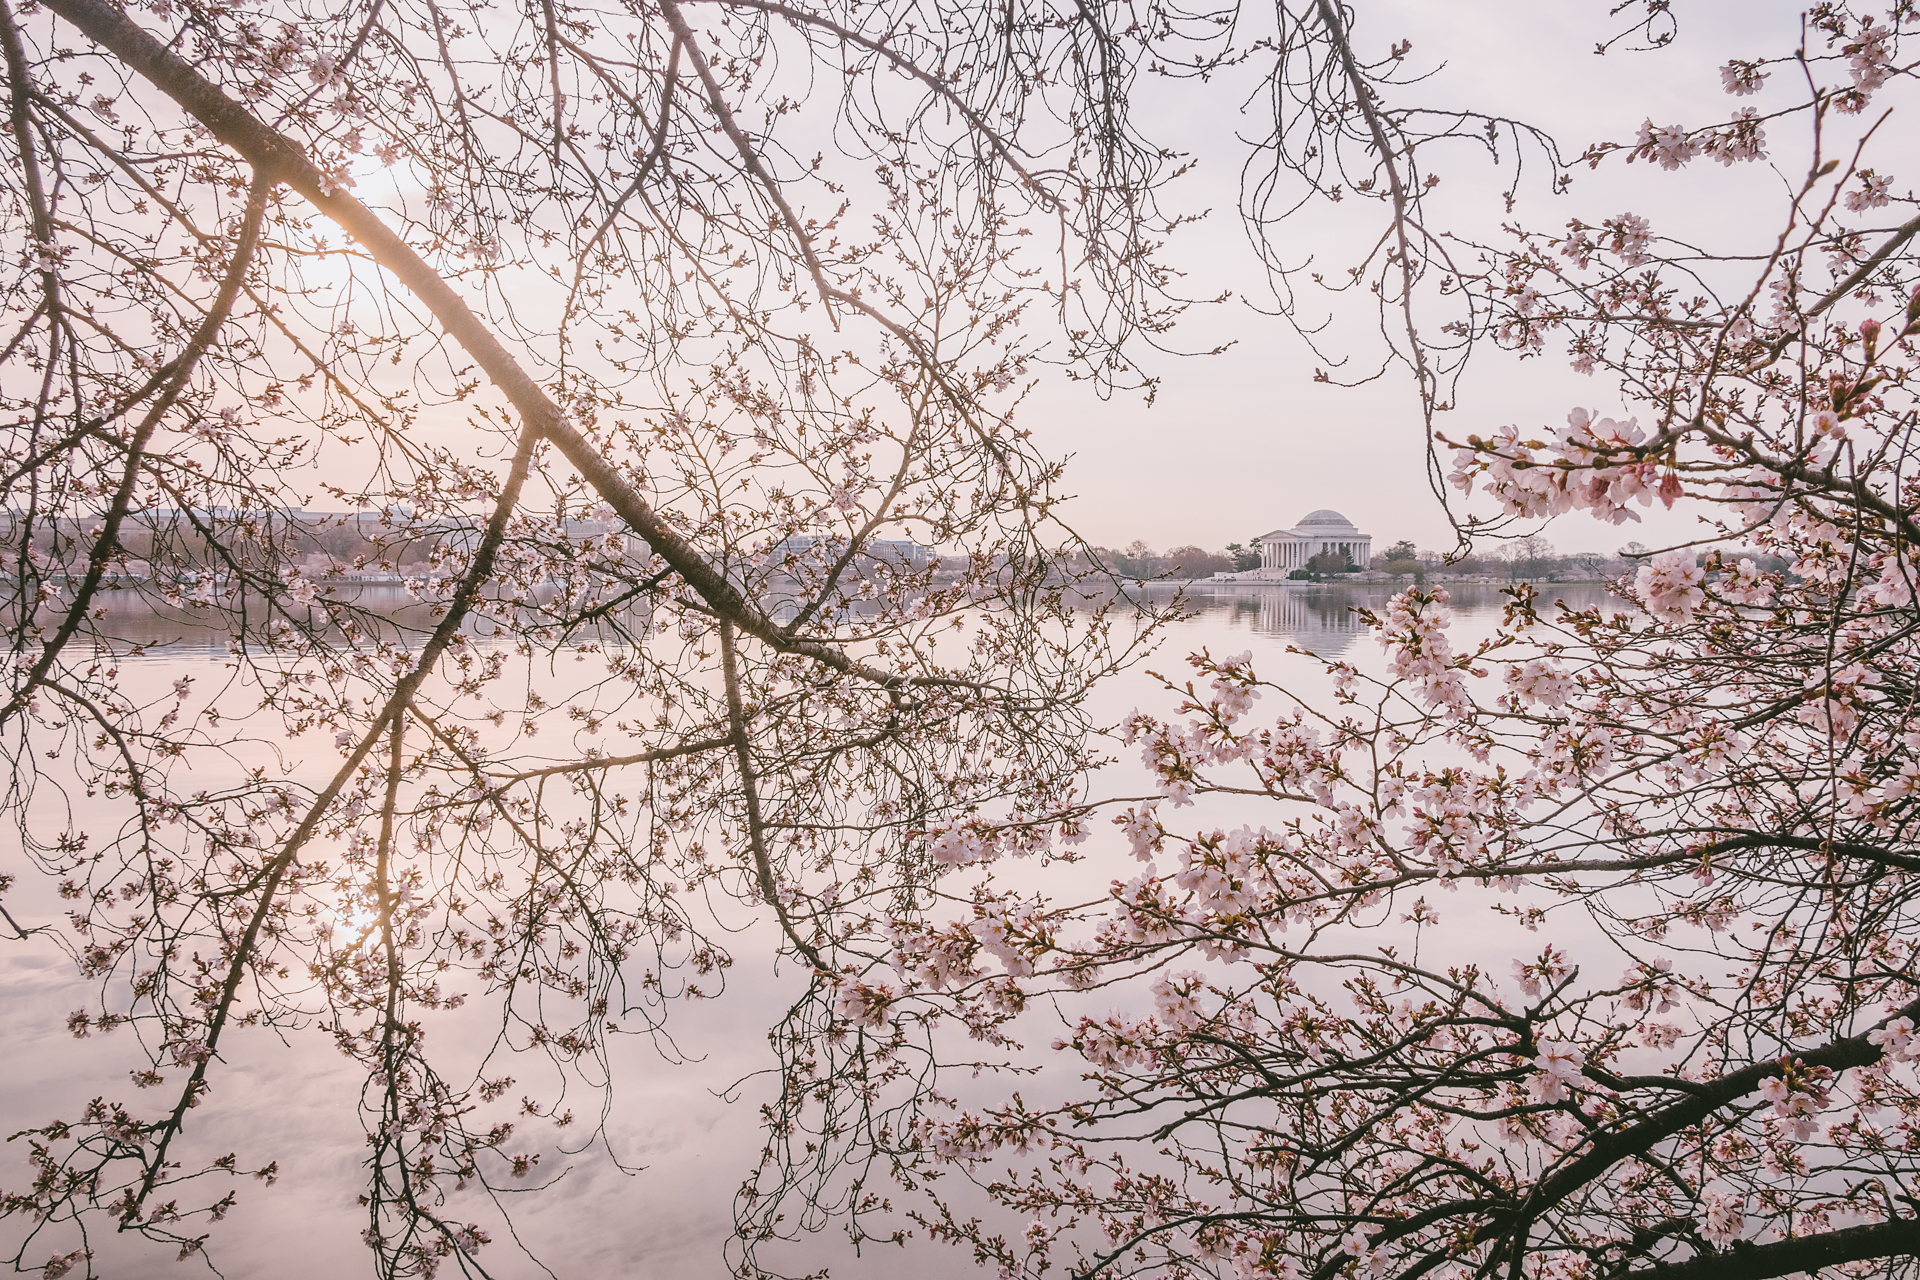 Beyond the Blossom Wall – Cherry blossoms frame the Jefferson Memorial{&amp;nbsp;}(Image: Zack Lewkowicz)<p></p>